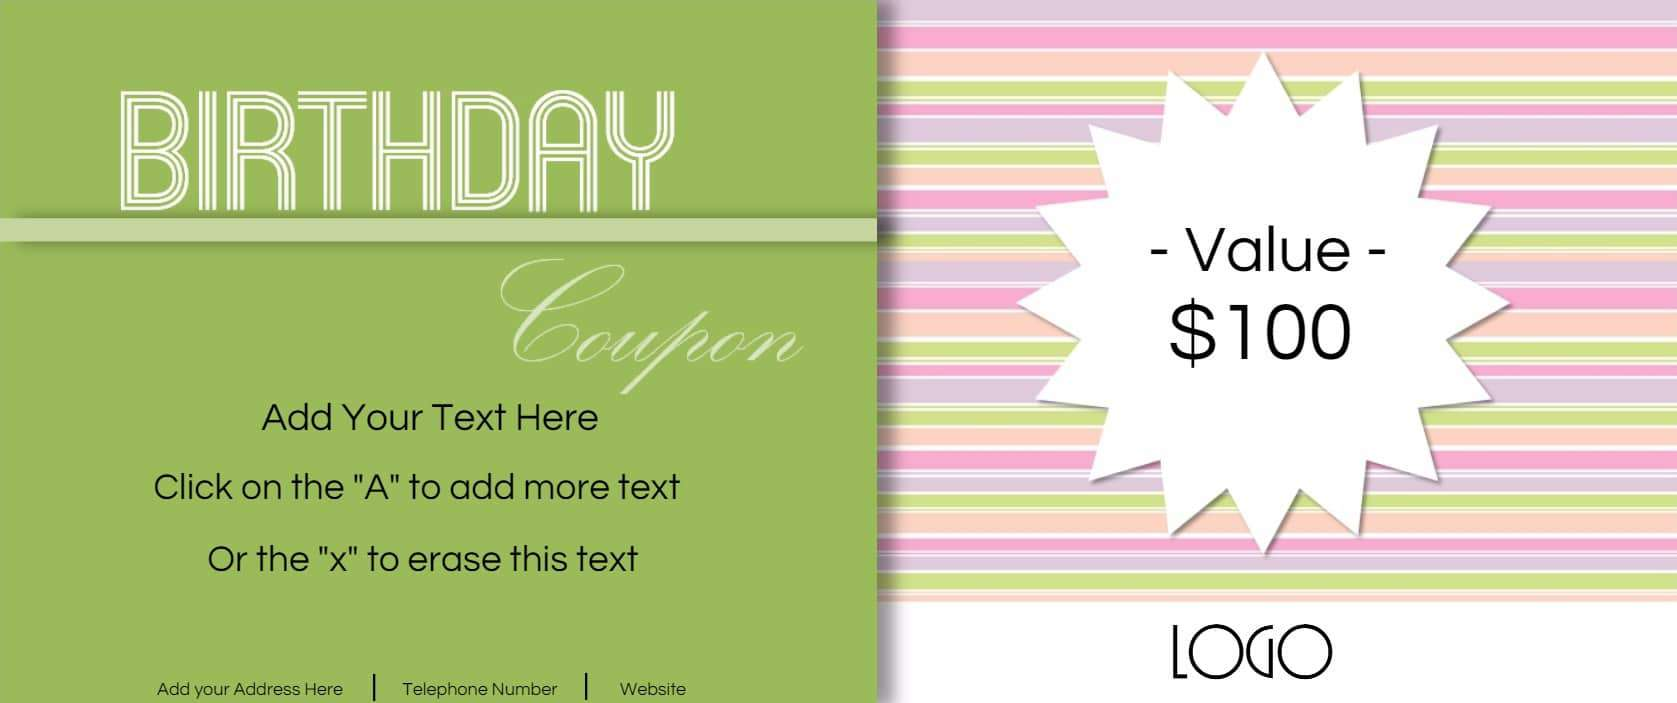 coupon template for word example of sorry letter standard payslip birthday gift coupon template sample customer service resume birthday coupons 14 birthday gift coupon templatehtml coupon template for word coupon template